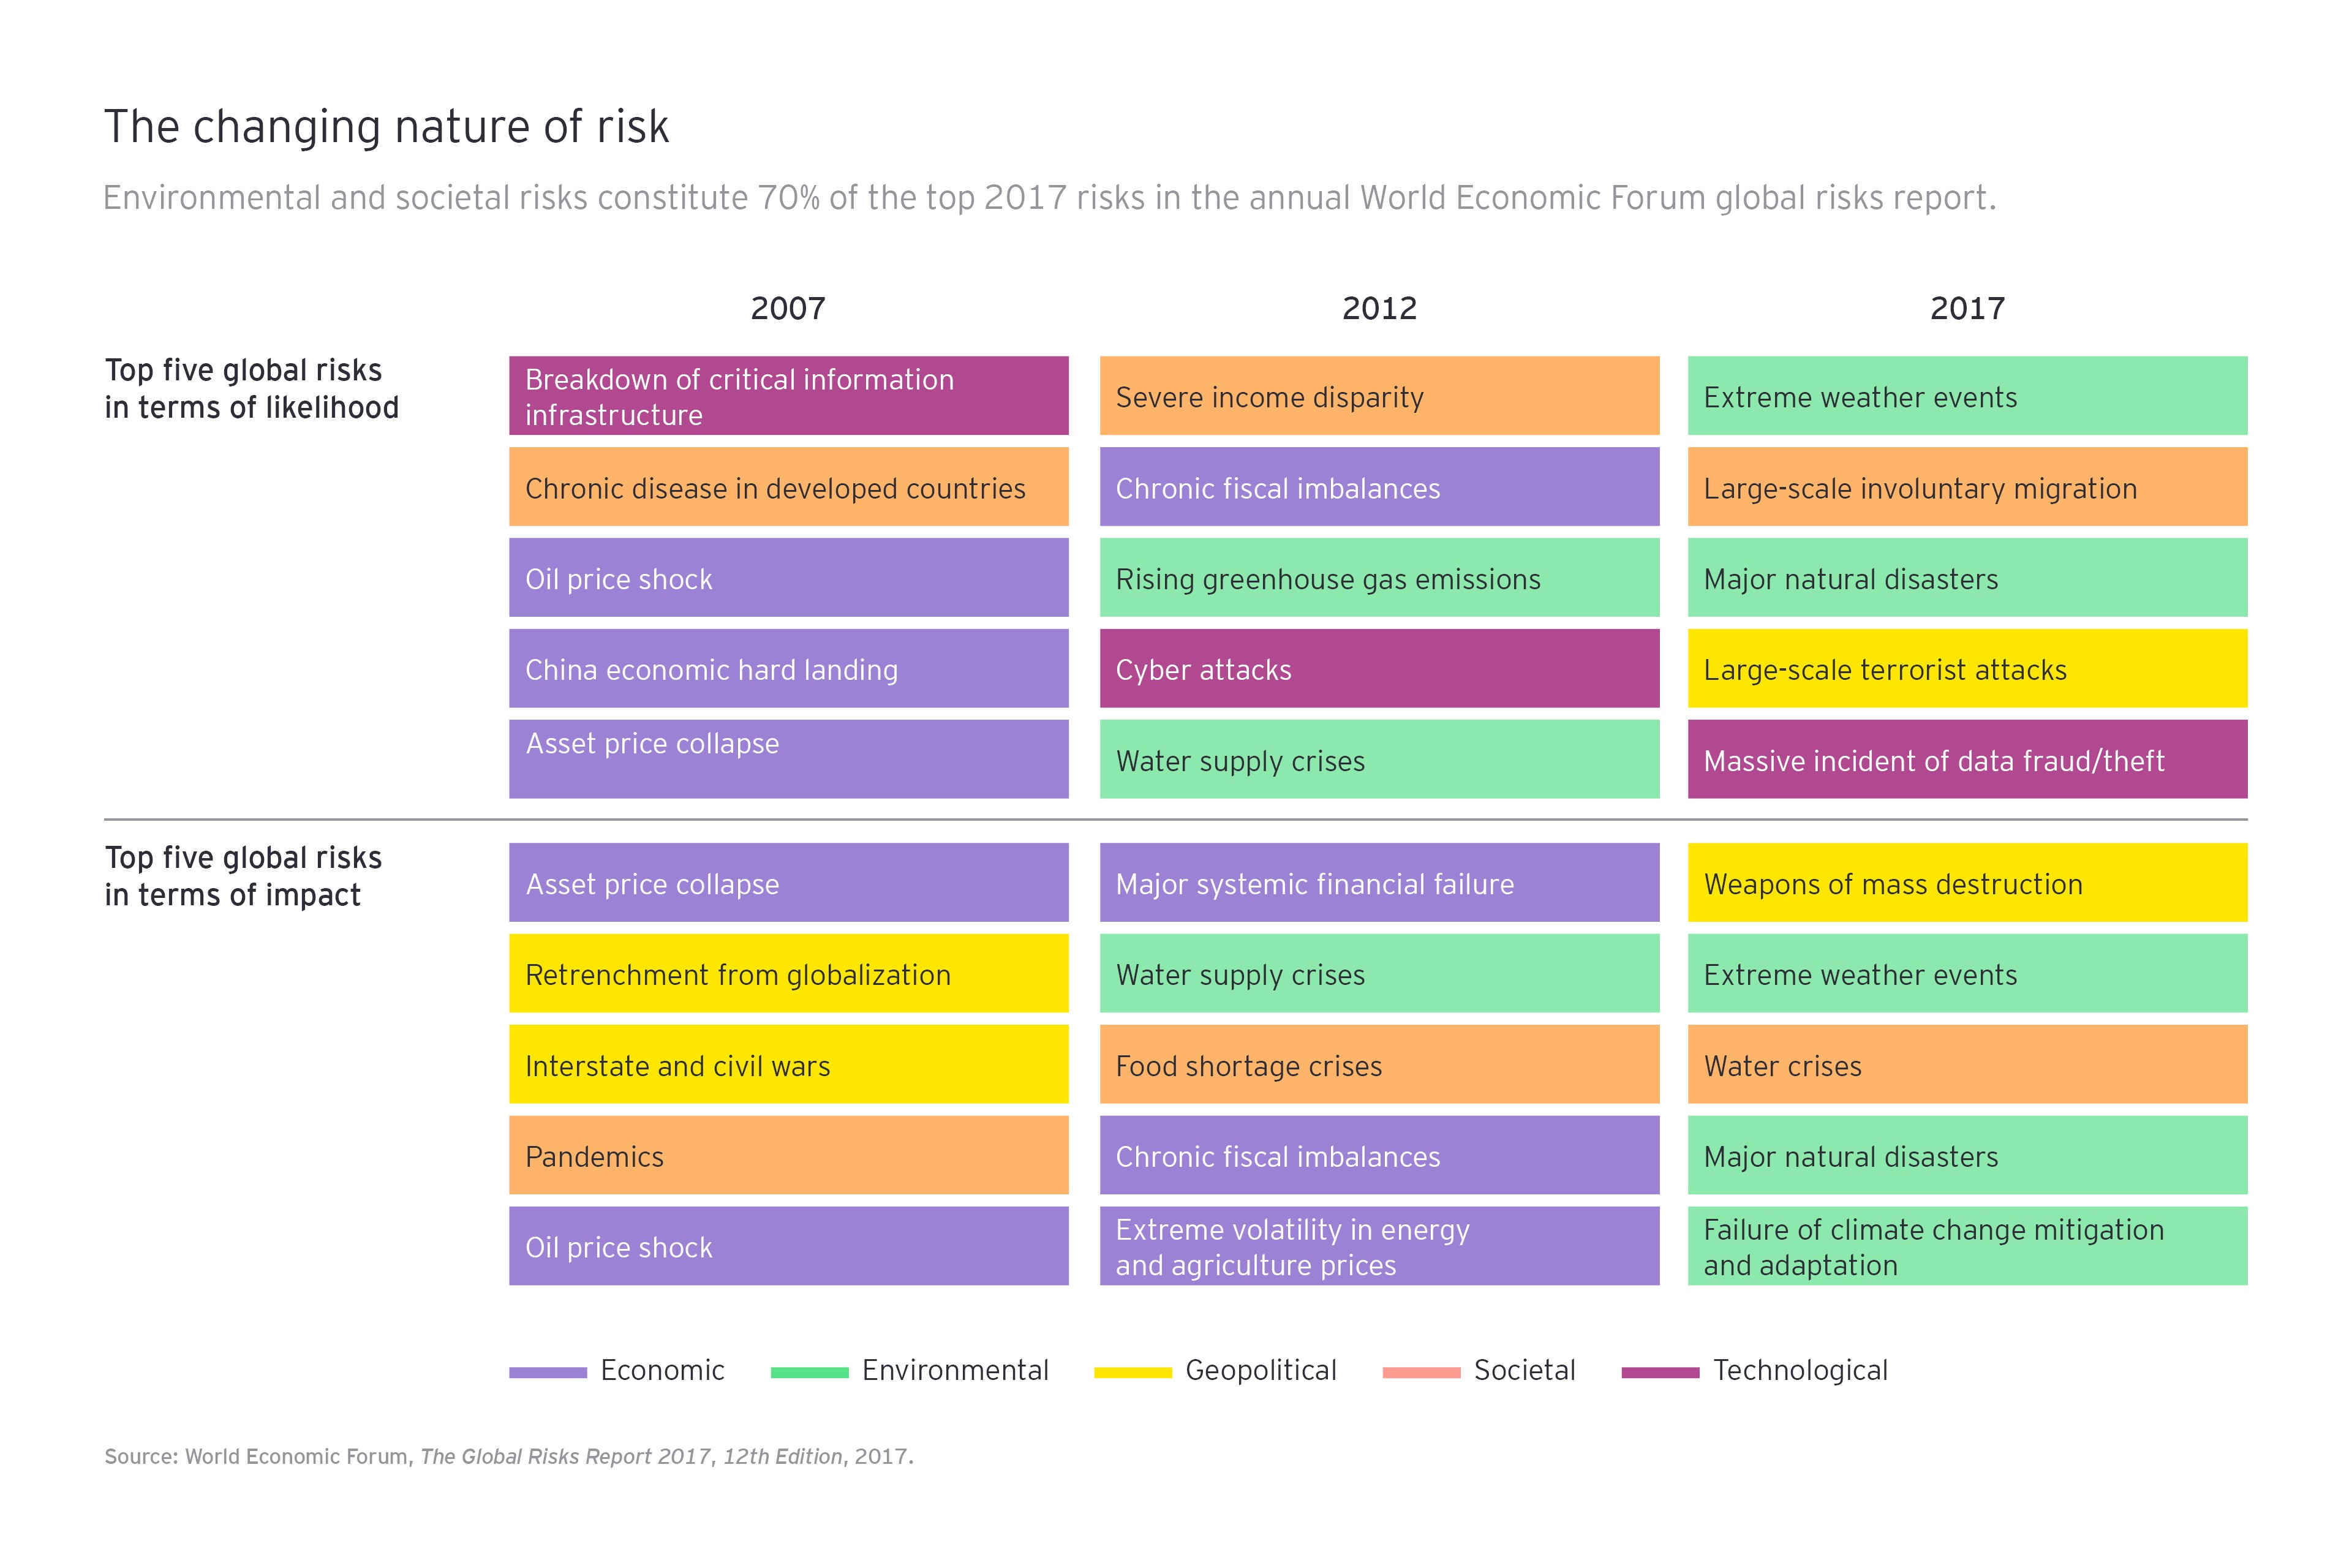 the changing natue of risk graphic 01 3840x